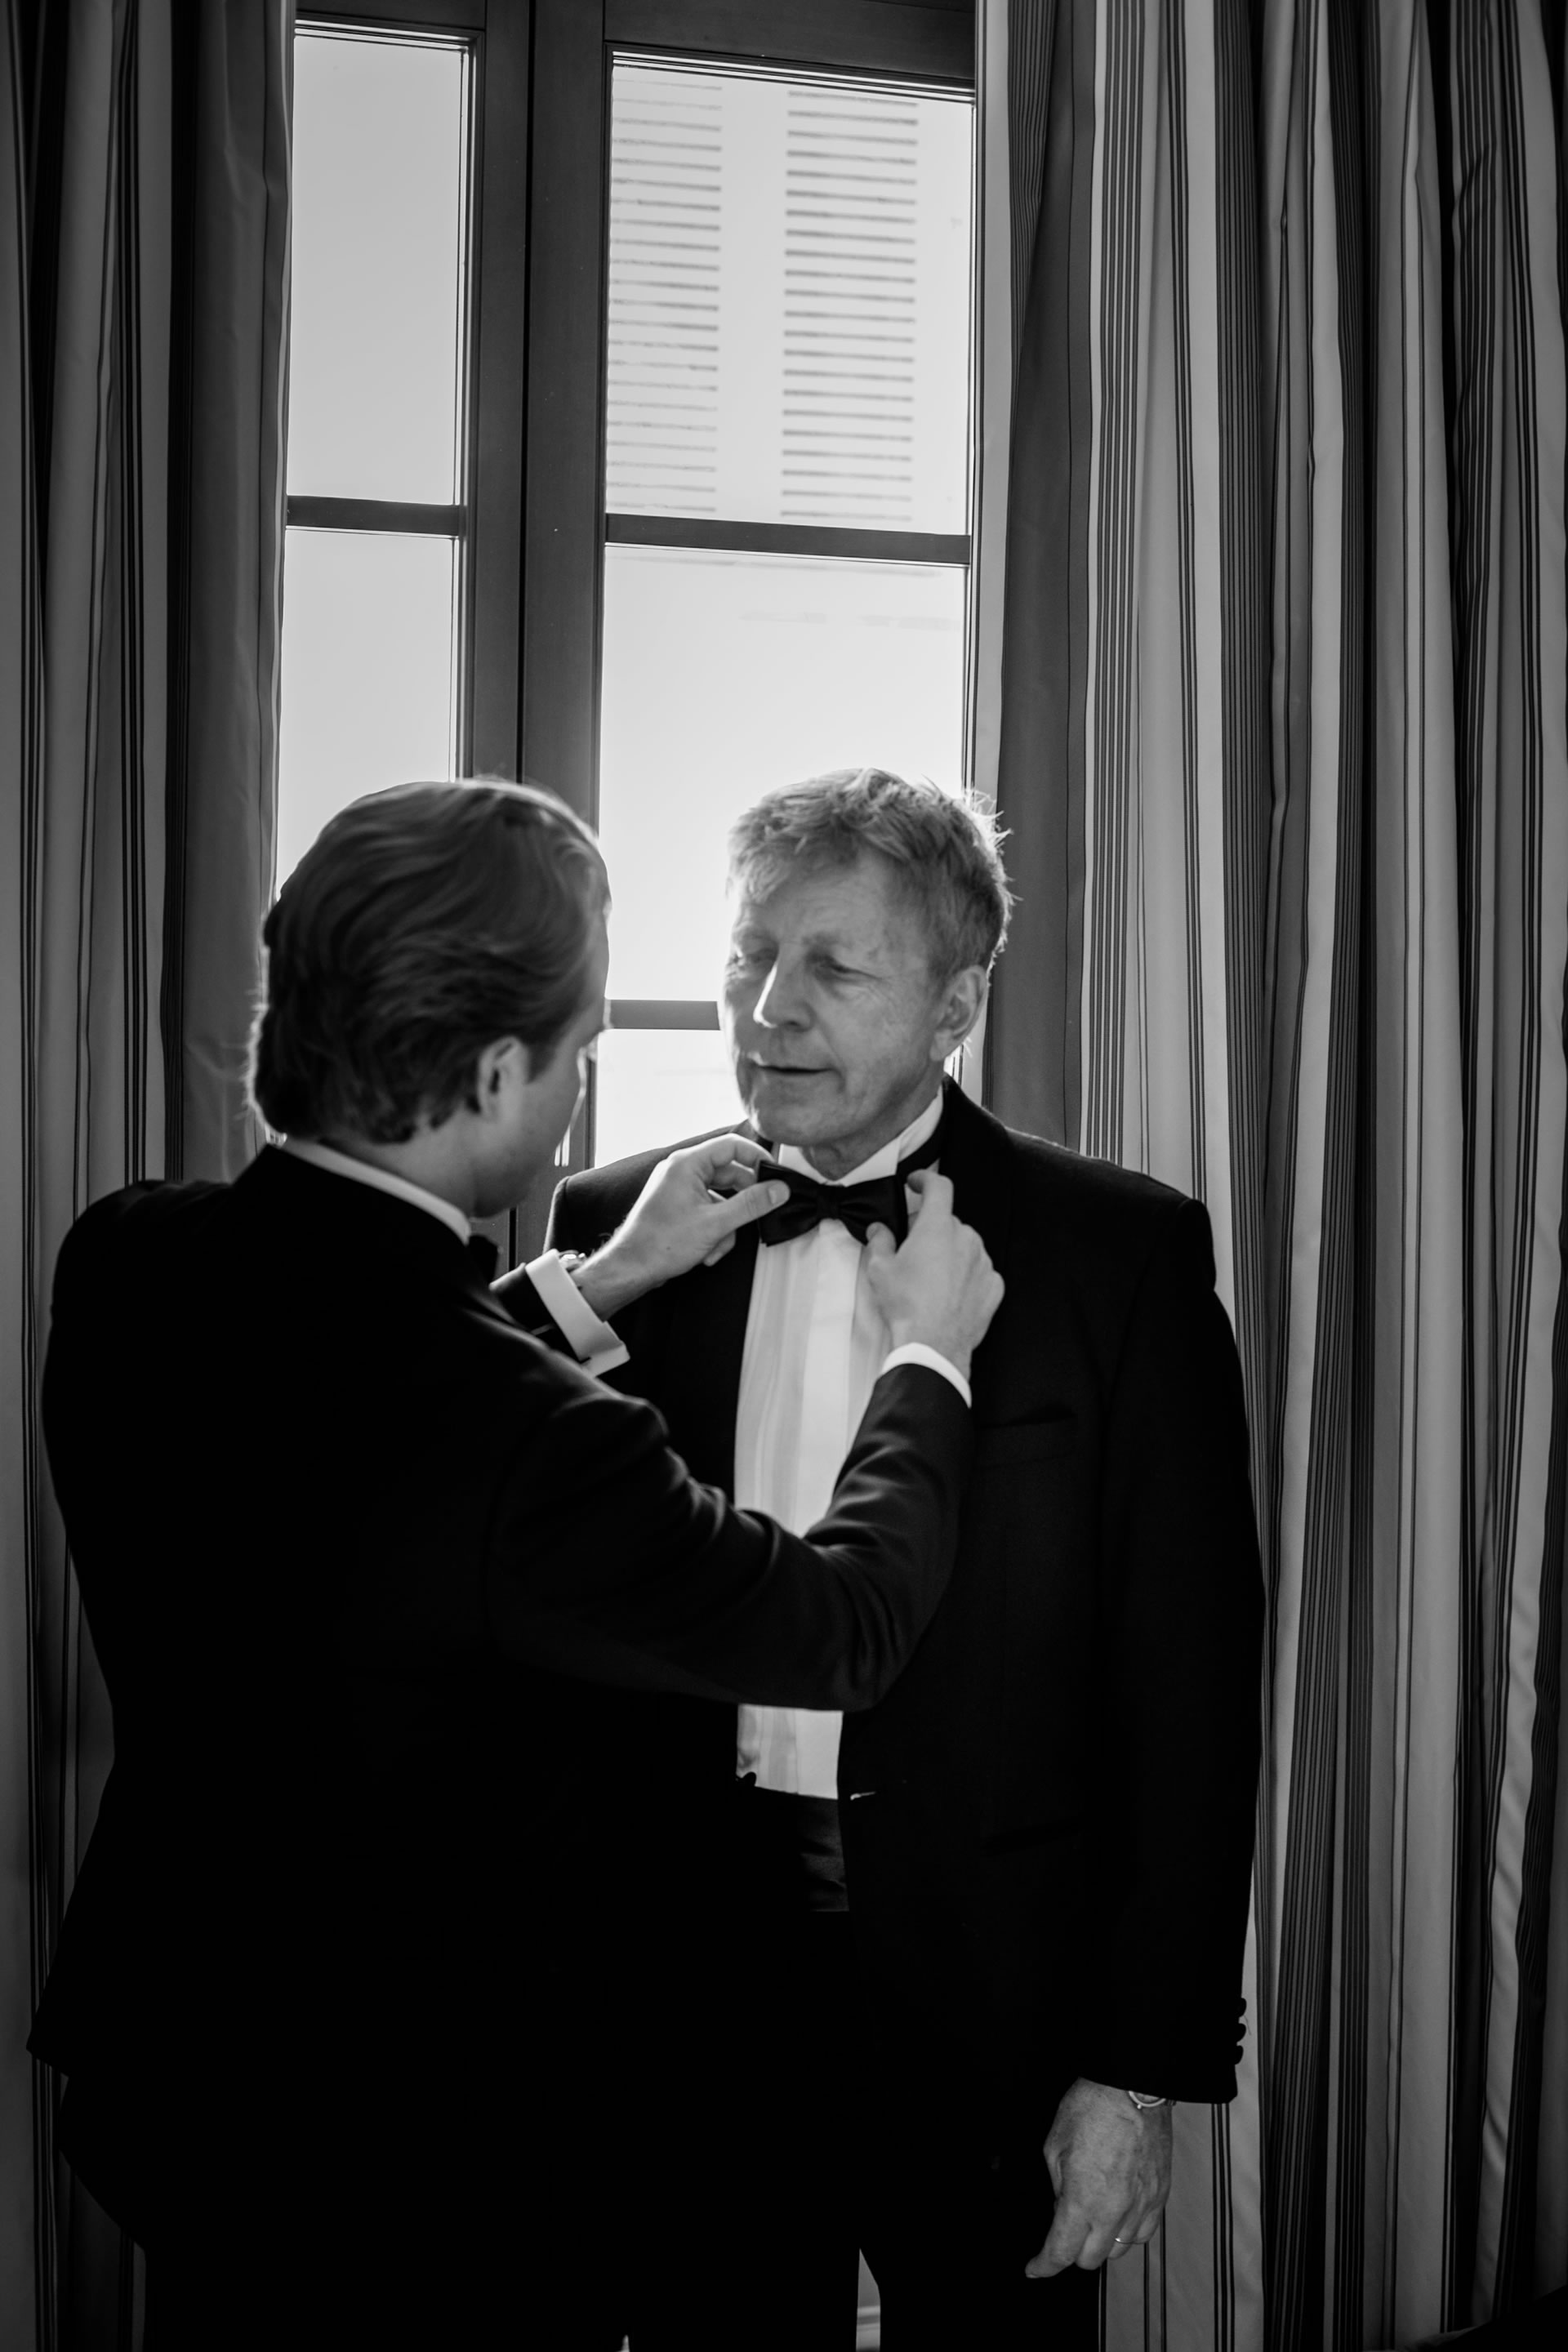 - 16 :: Alex and Steve :: Luxury wedding photography - 15 ::  - 16